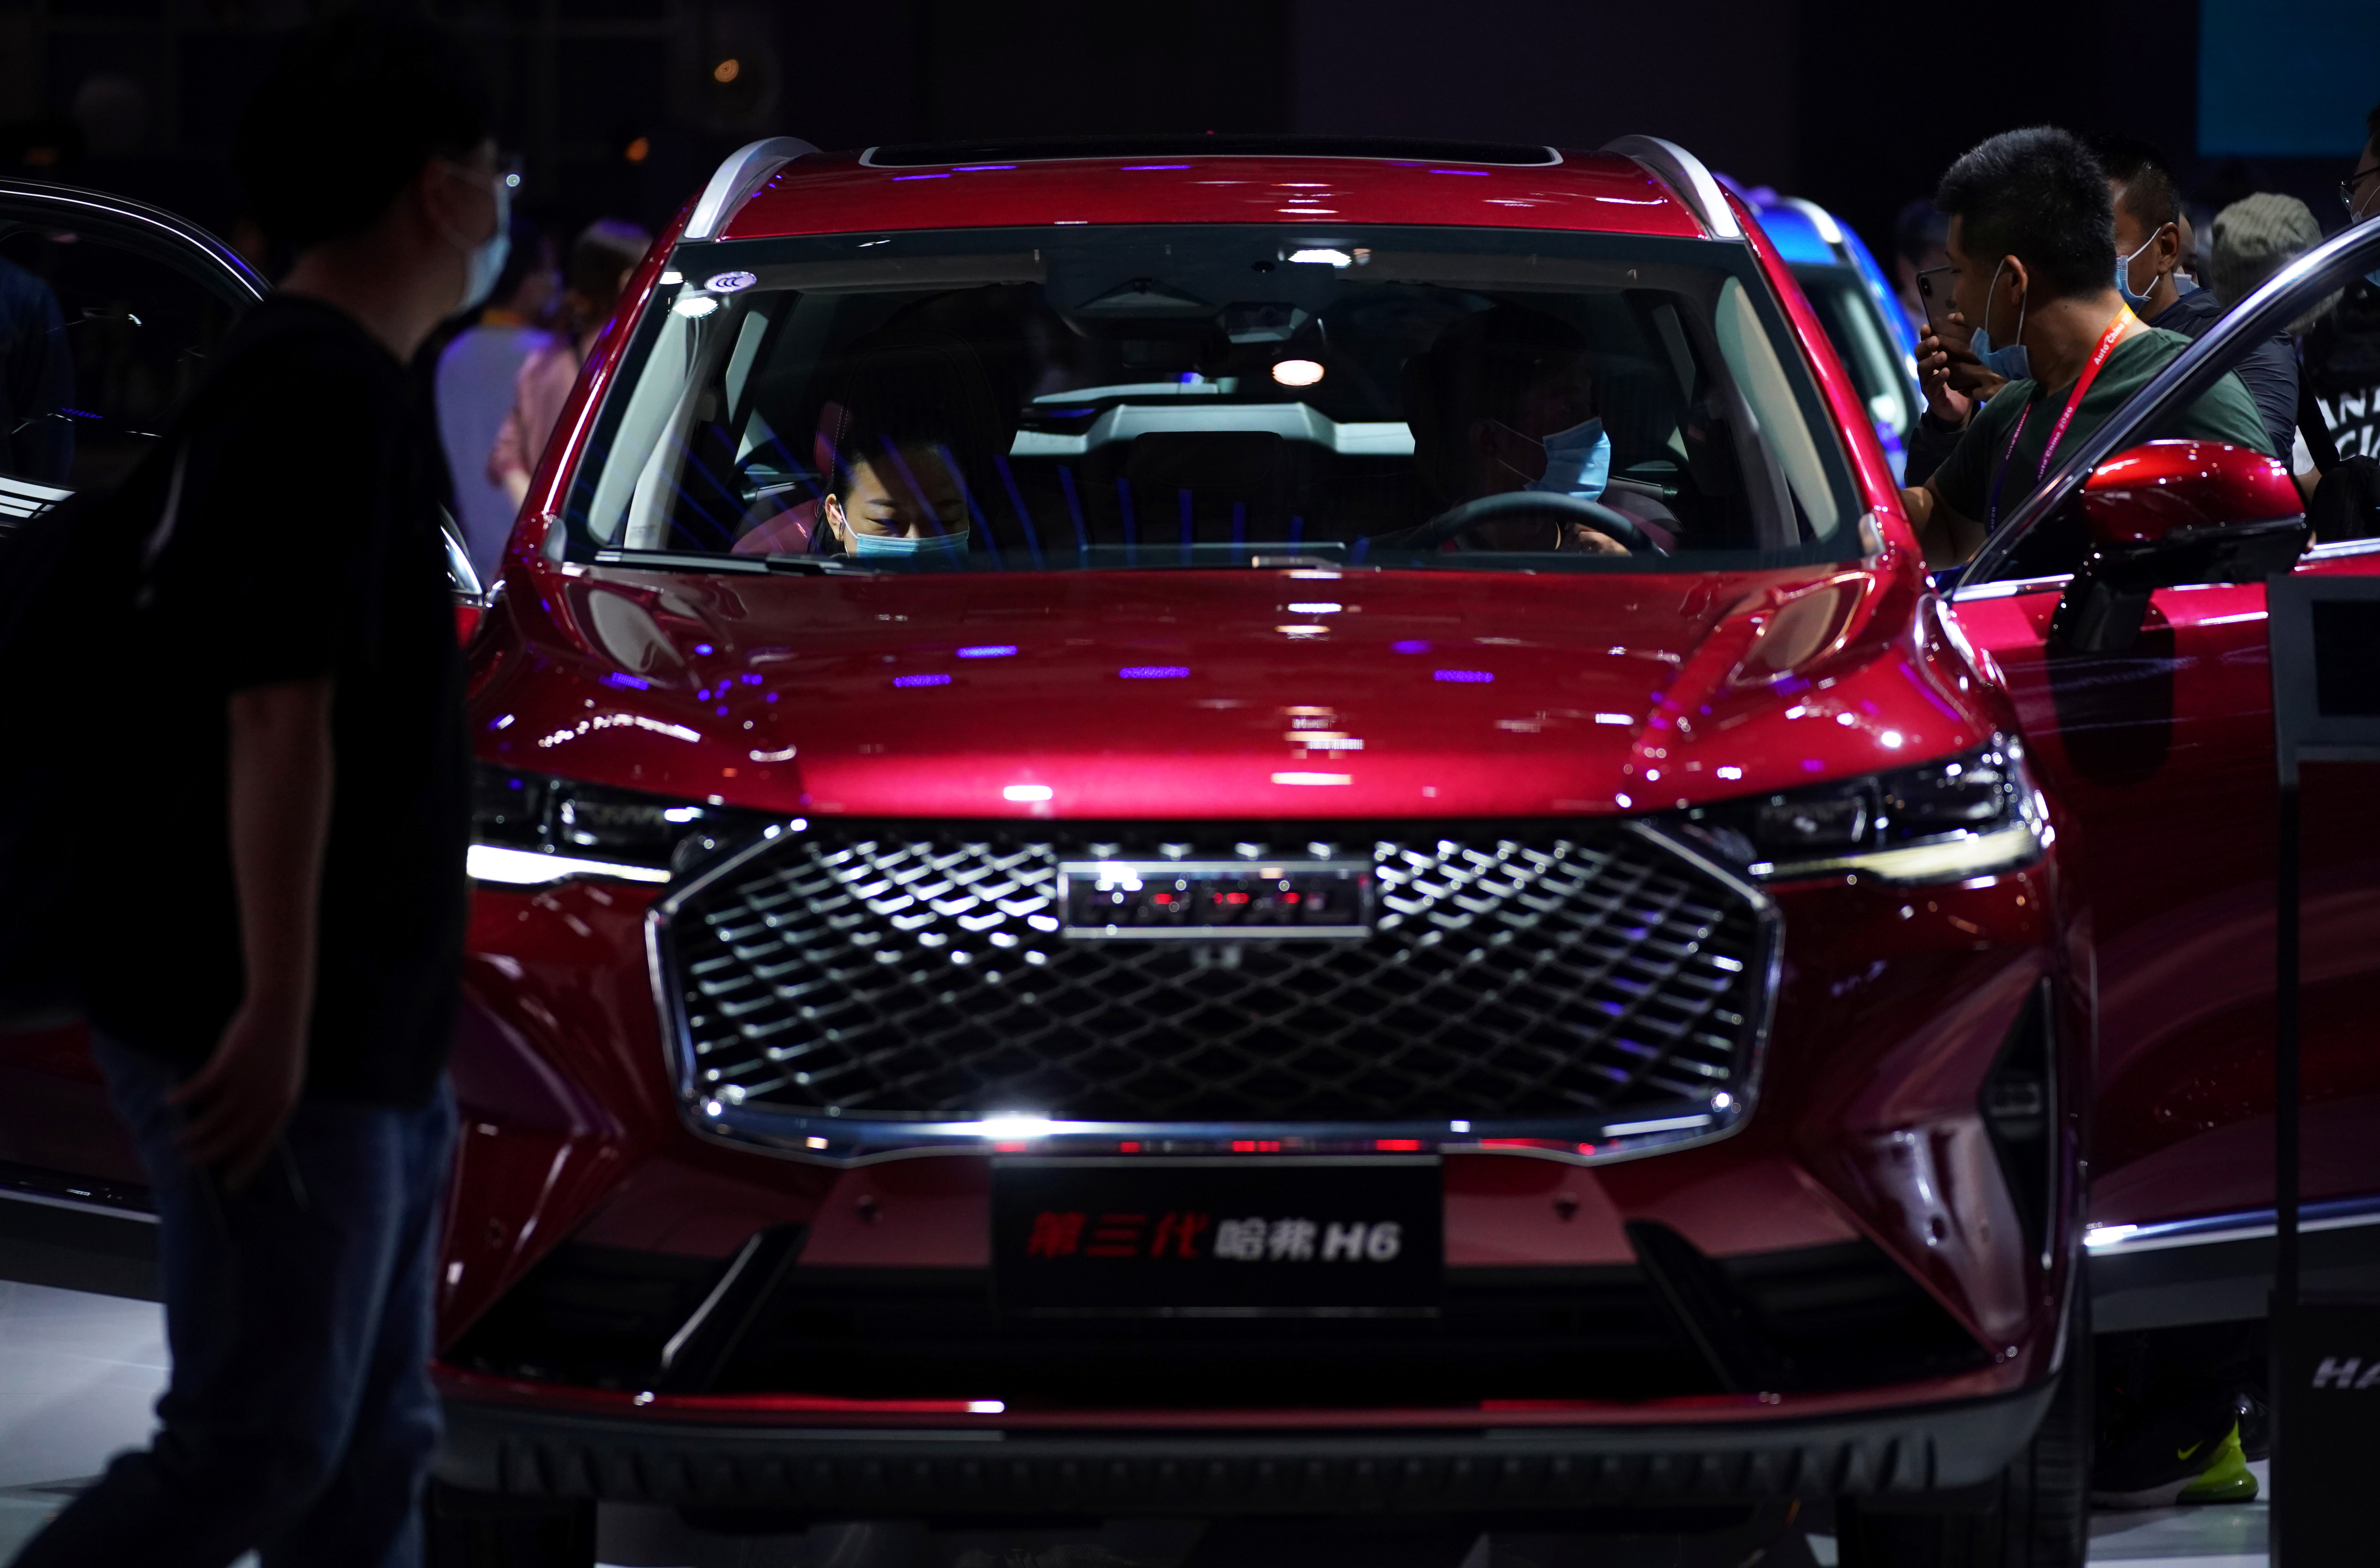 People wearing face masks check out the third-generation Haval H6 SUV by GWM (Great Wall Motors) at the Beijing International Automotive Exhibition, or Auto China show, following the coronavirus disease (COVID-19) outbreak, in Beijing, China September 27, 2020. REUTERS/Tingshu Wang